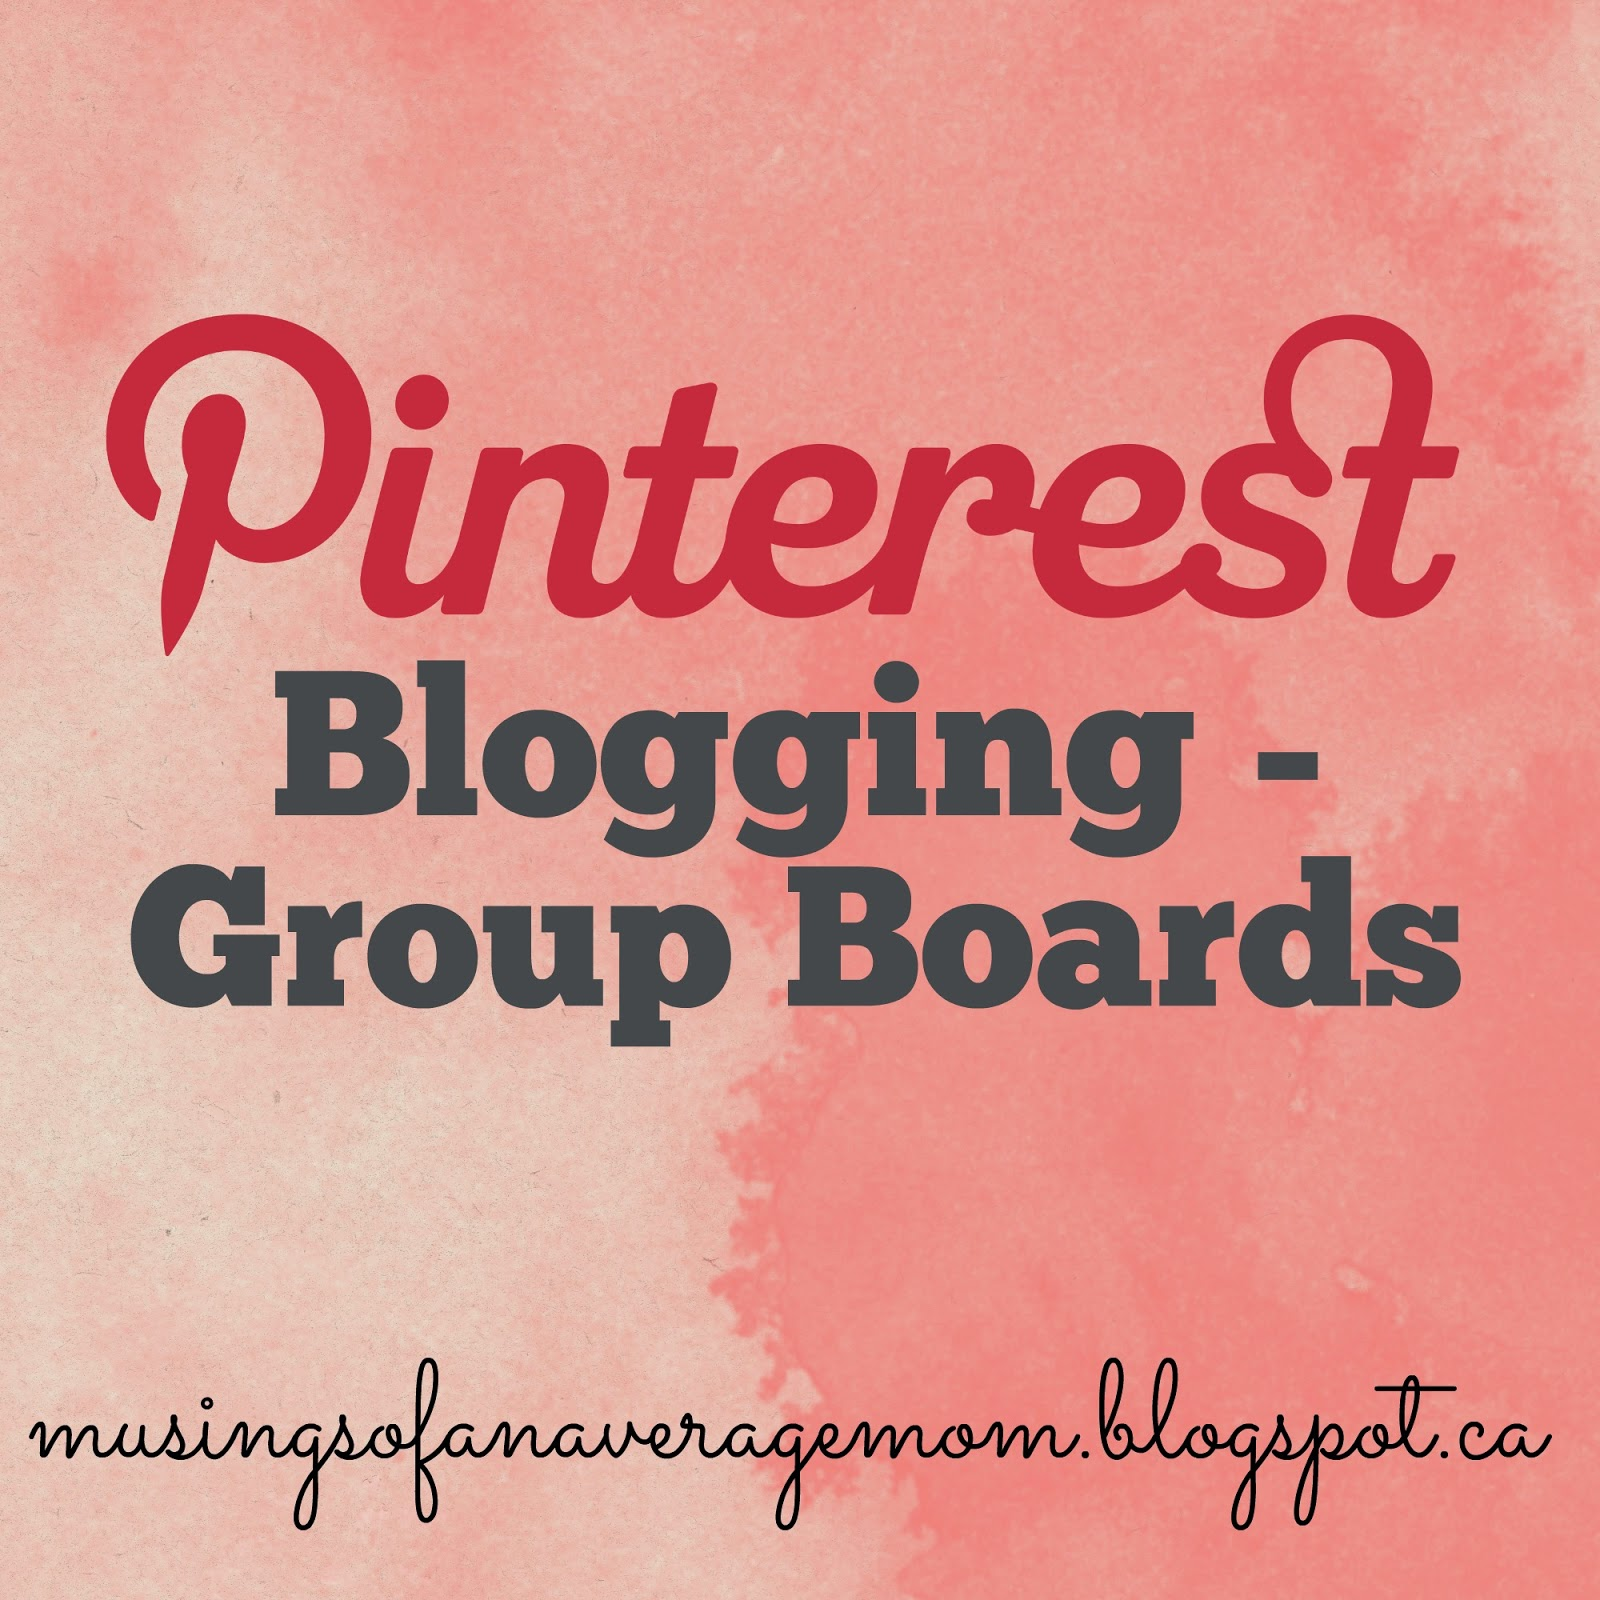 Humor Inspirational Quotes: Musings Of An Average Mom: Blogging Pinterest Group Boards